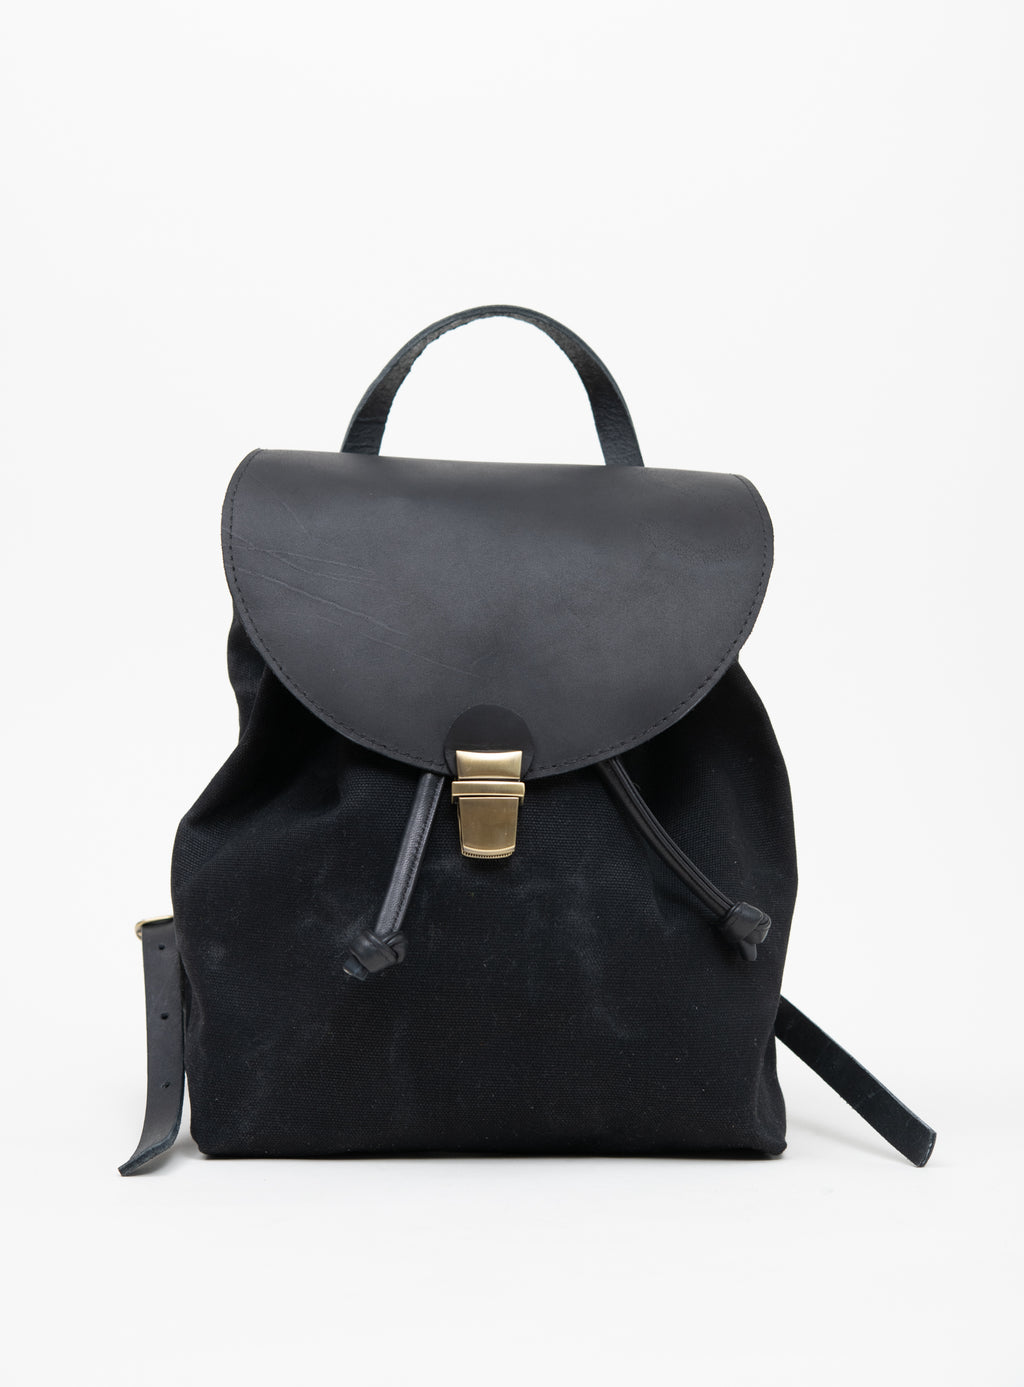 Veinage Leather and waxed coton rucksack MILAN model Small